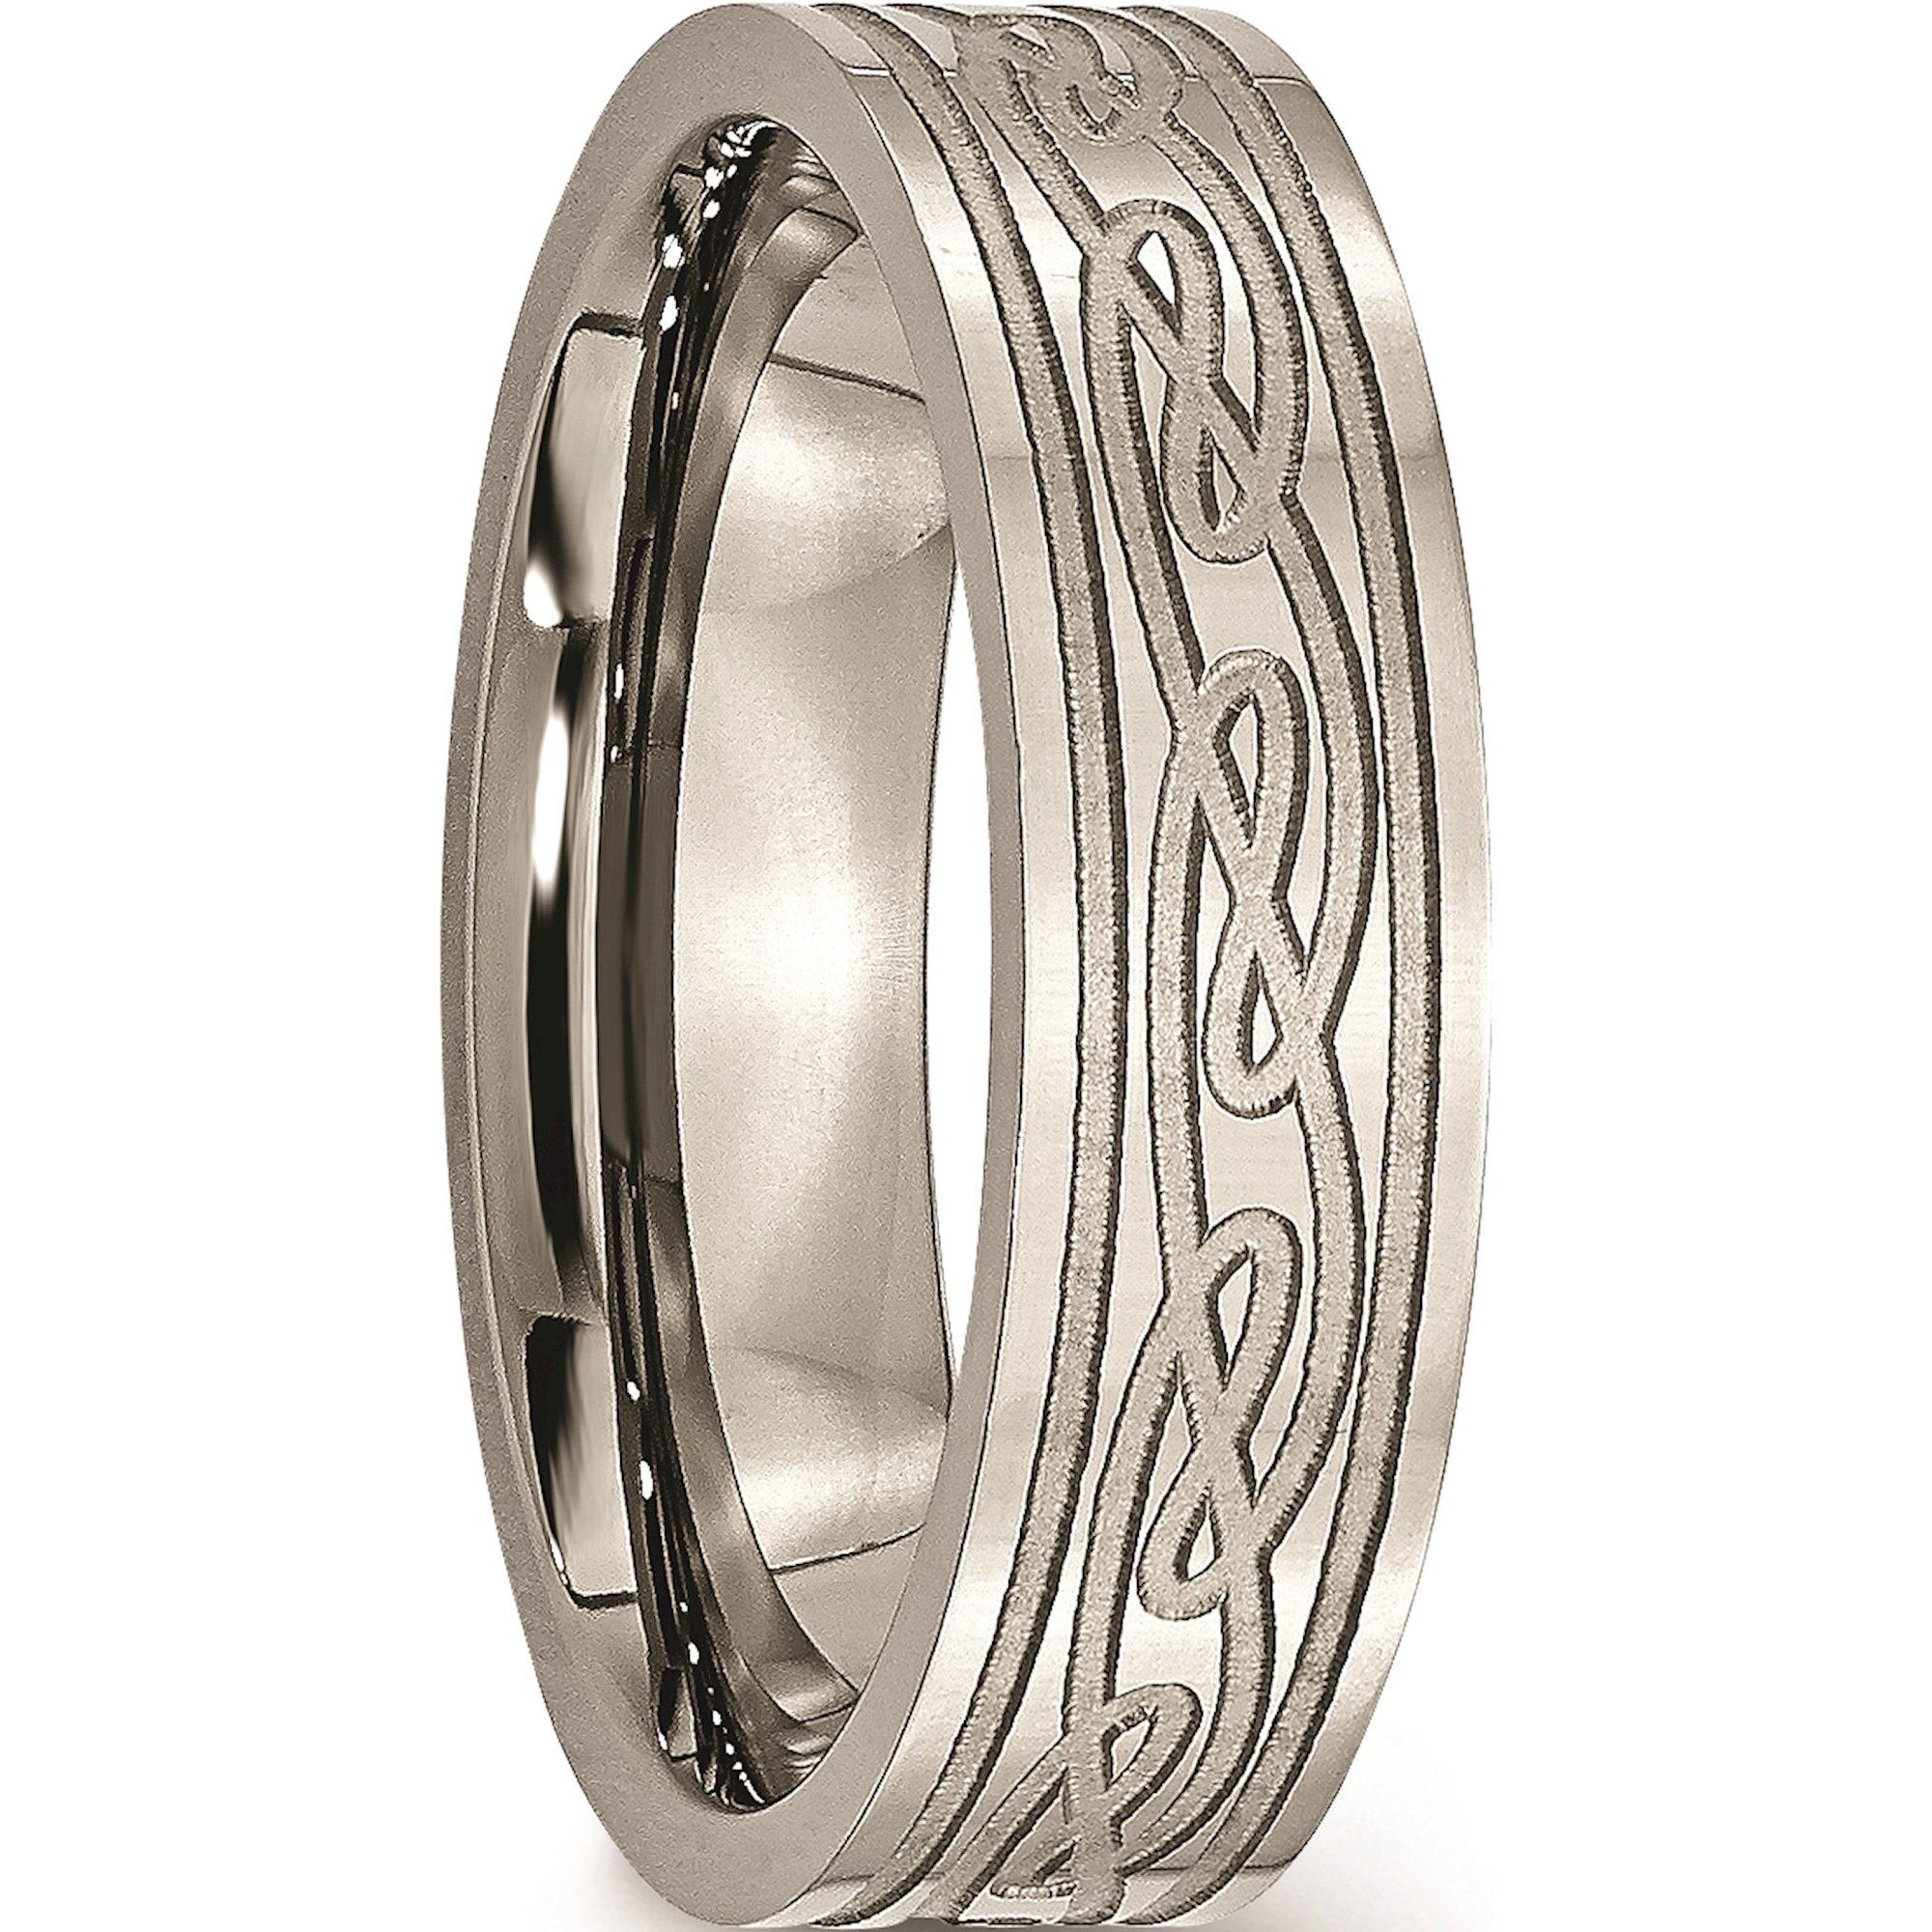 Jbsp Titanium Flat Laser Etched Celtic Knot 6mm Polished Band